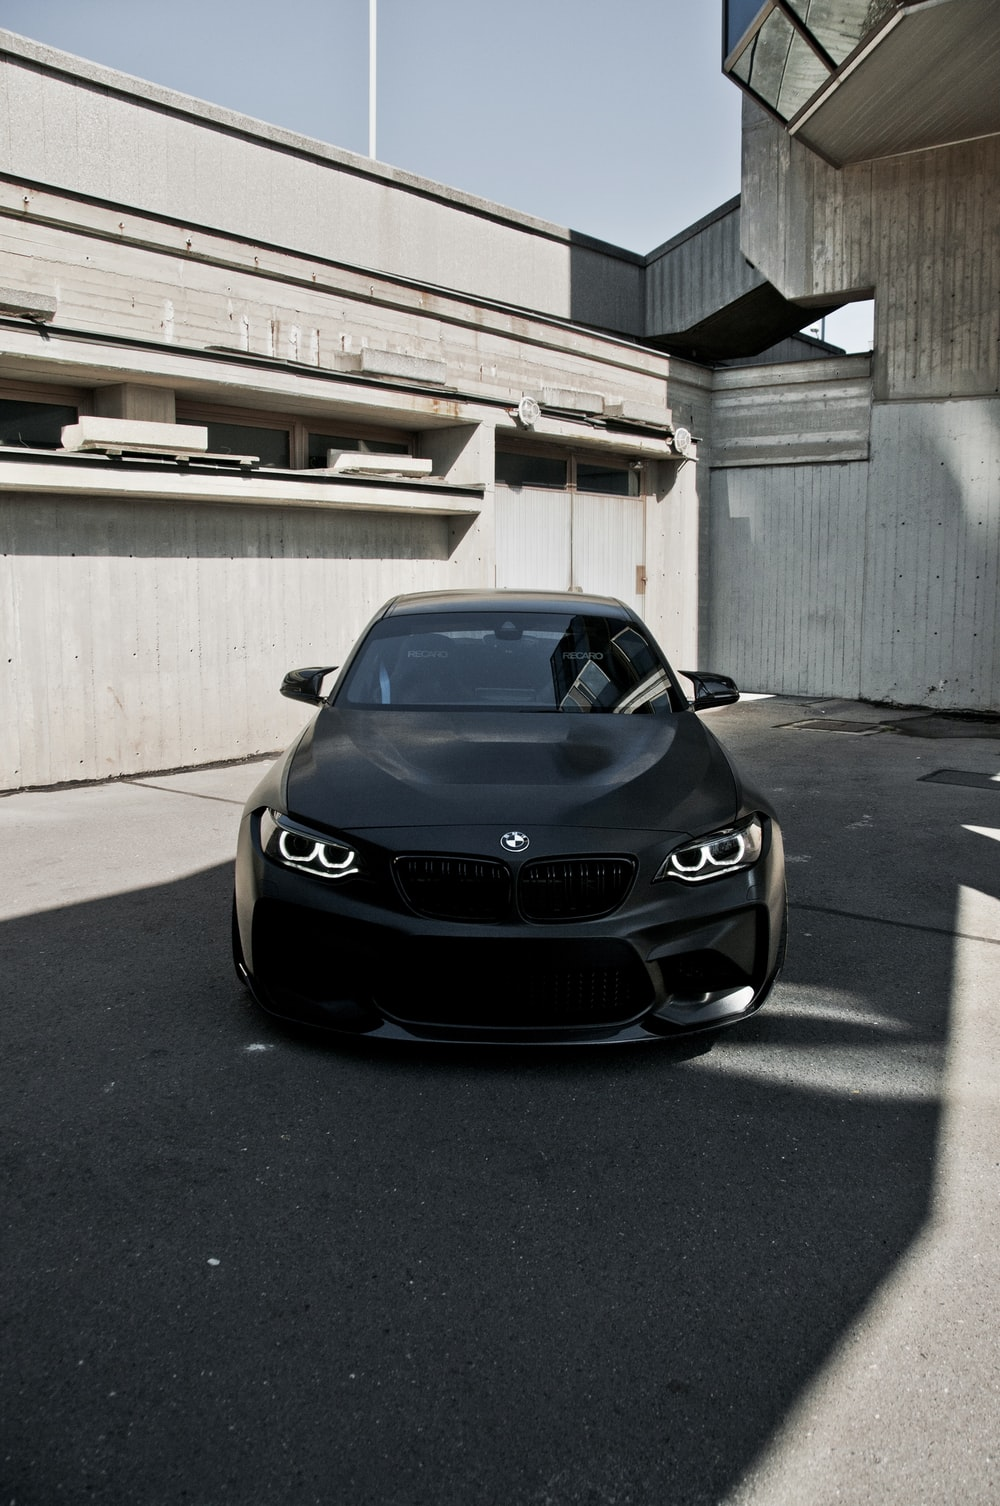 black bmw car parked on gray concrete floor during daytime